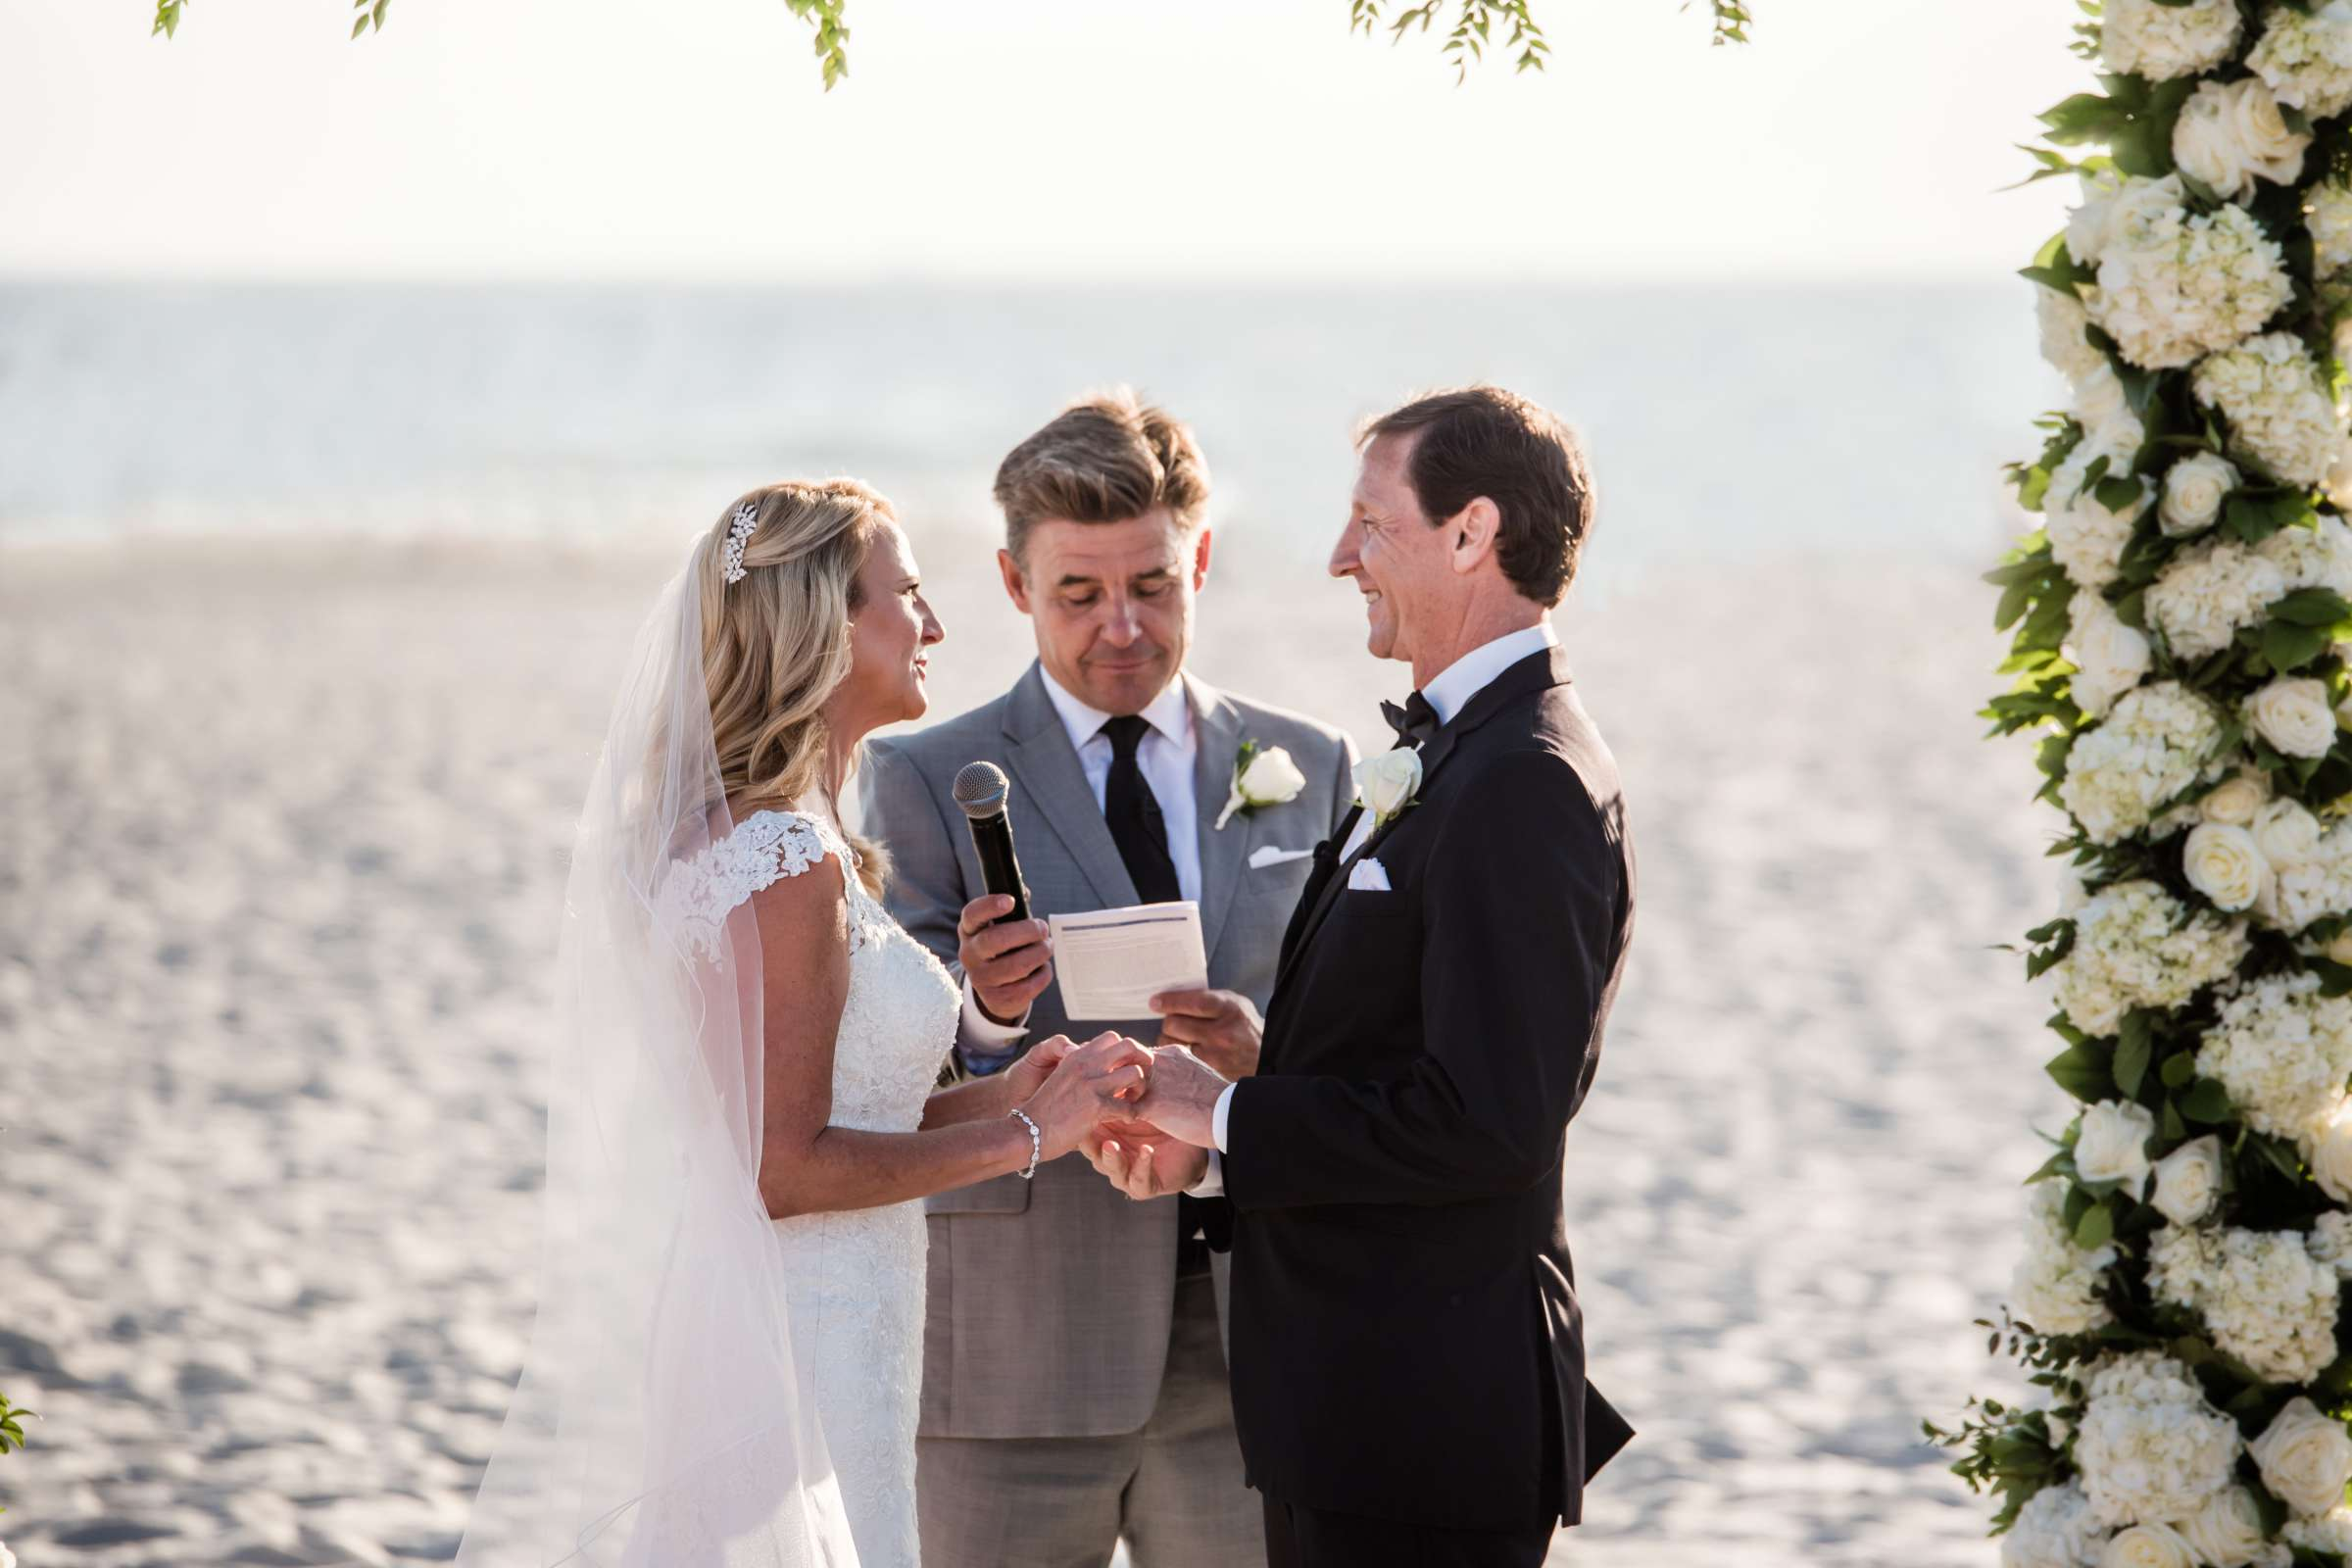 Hotel Del Coronado Wedding coordinated by Creative Affairs Inc, Diane and Paul Wedding Photo #65 by True Photography